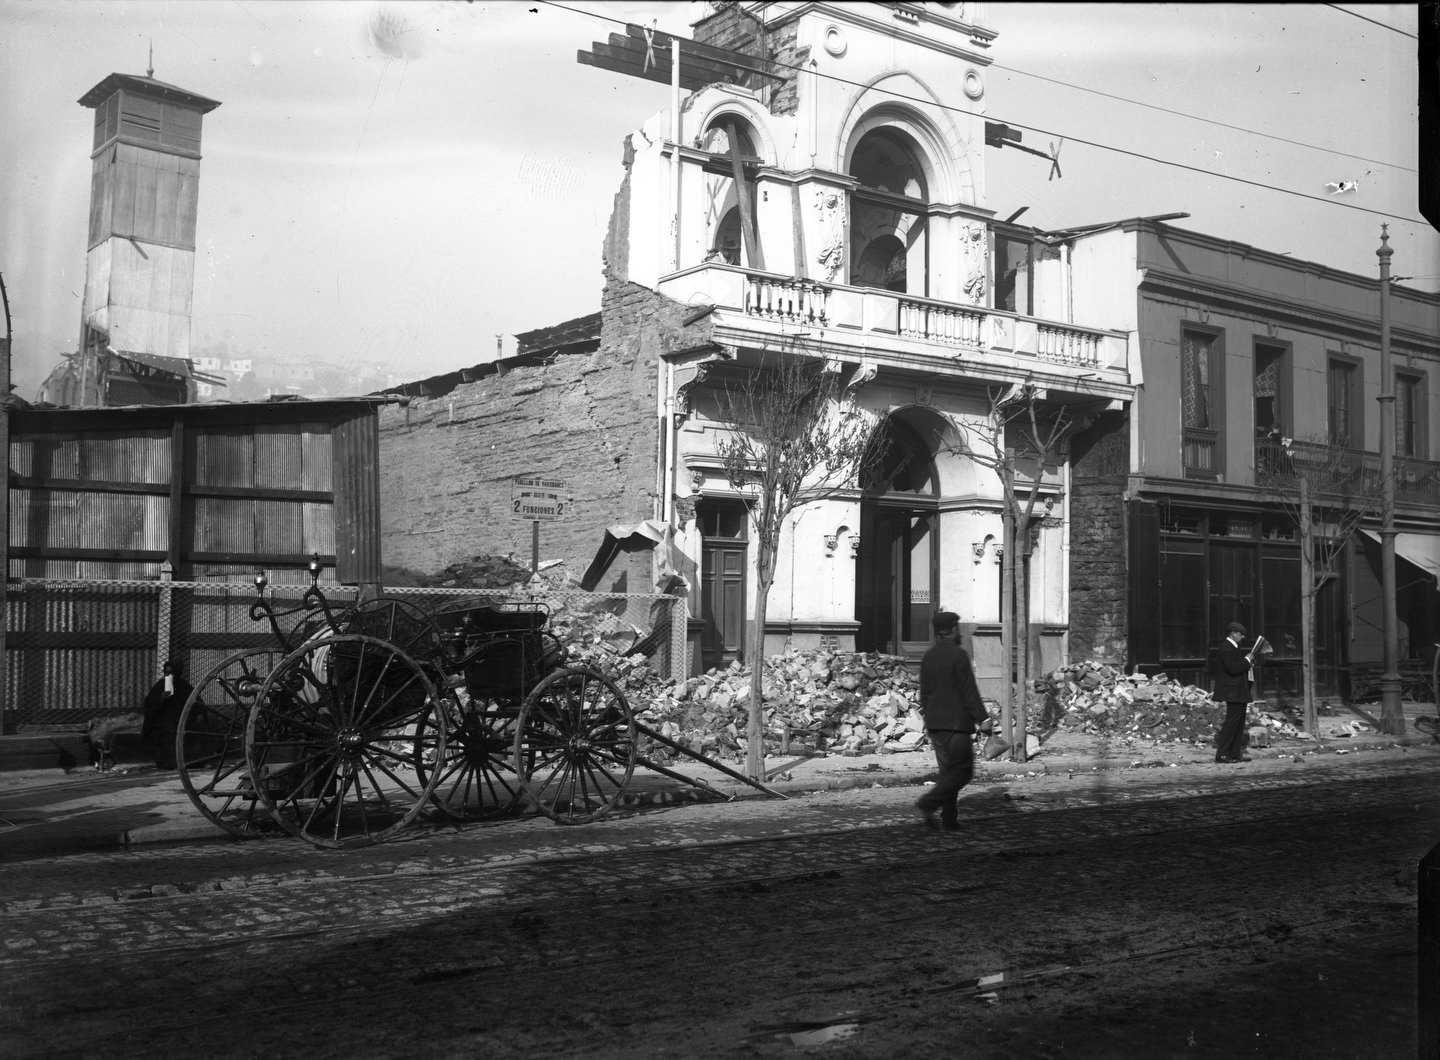 Enterreno - Fotos históricas de chile - fotos antiguas de Chile - Terremoto de Valparaiso en 1906